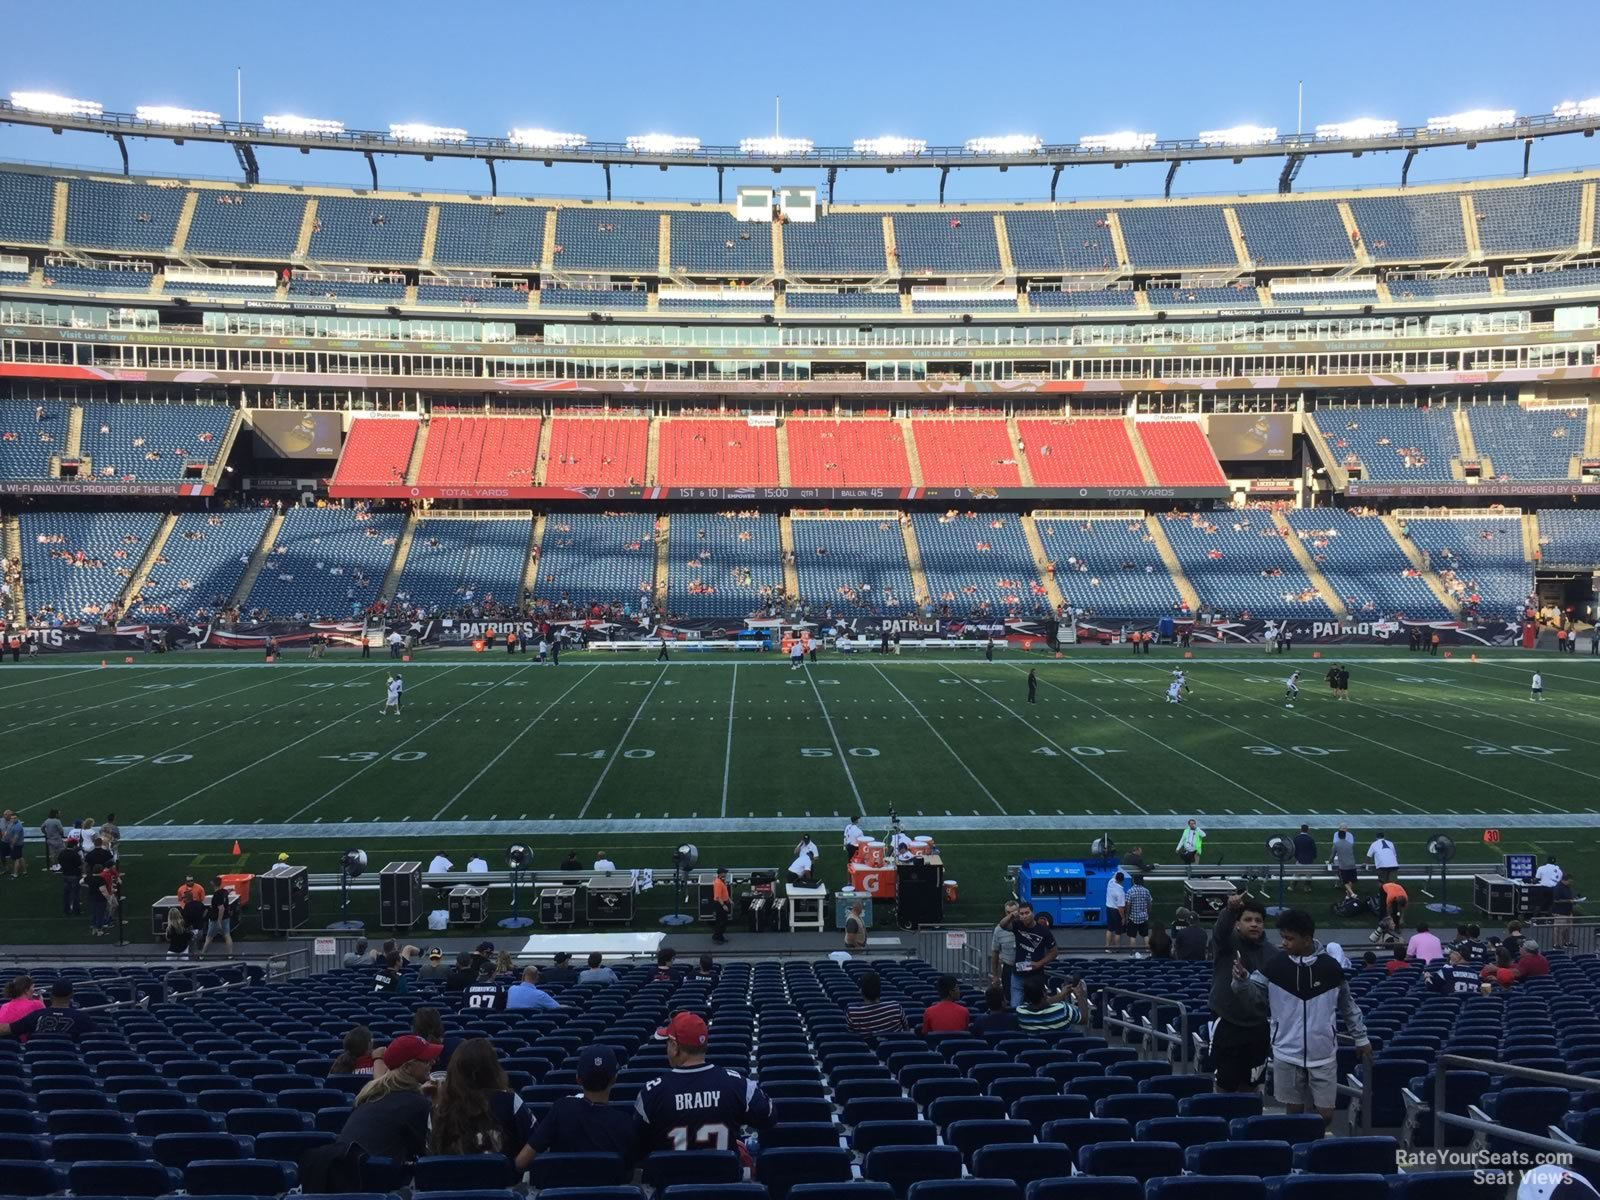 New England Patriots Seat View for Gillette Stadium Section 132, Row 29